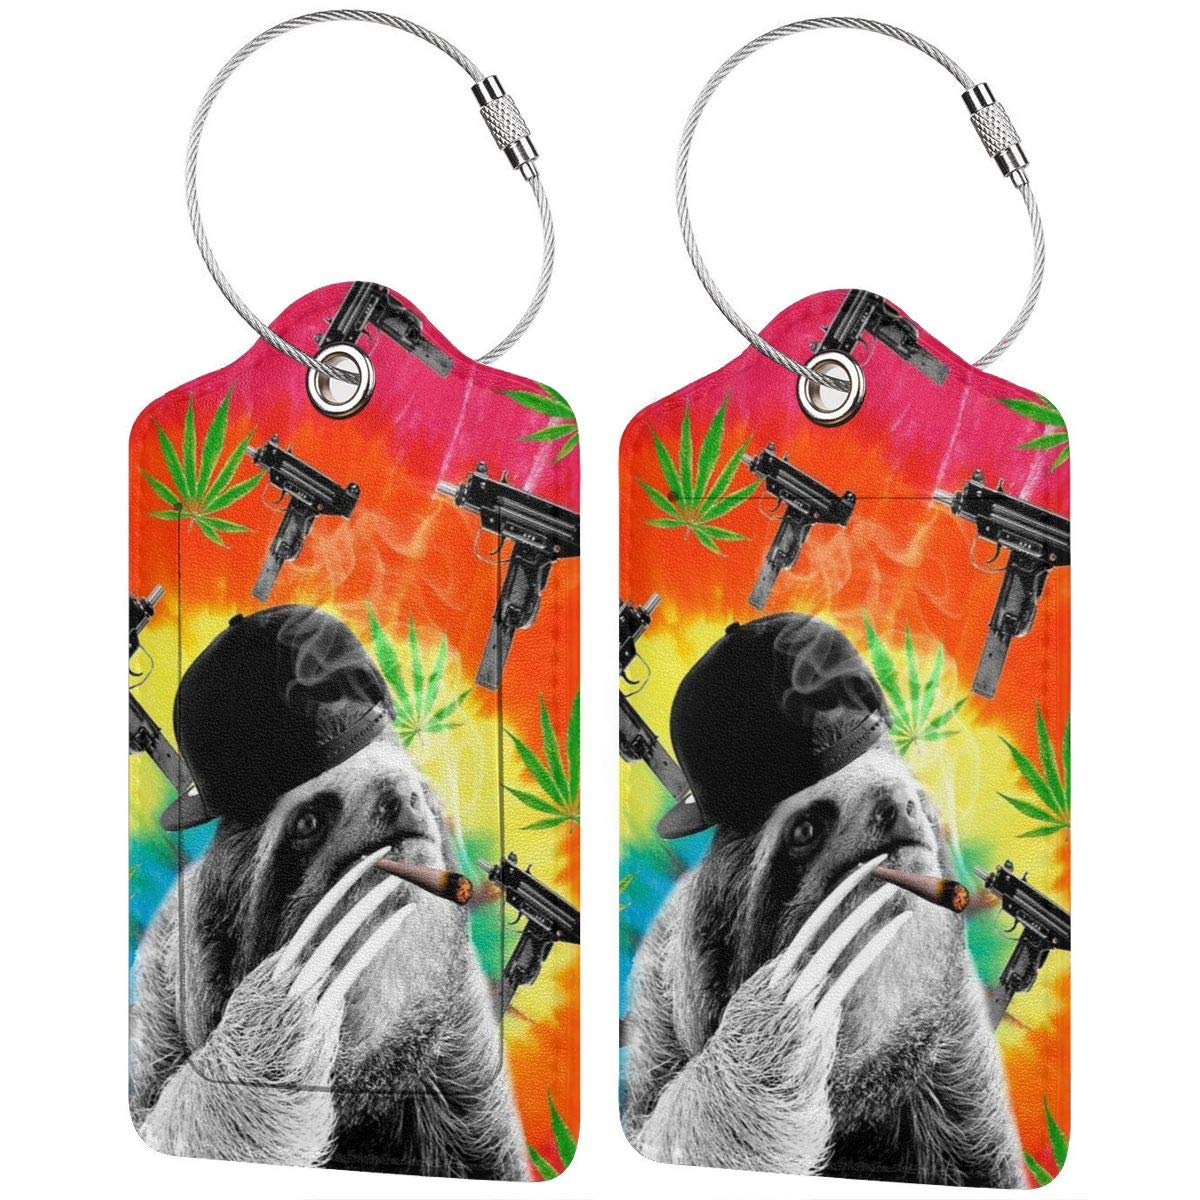 Leather Luggage Tag Sloth Gangsta Smoking Dope Marijuana Weed Luggage Tags For Suitcase Travel Lover Gifts For Men Women 4 PCS